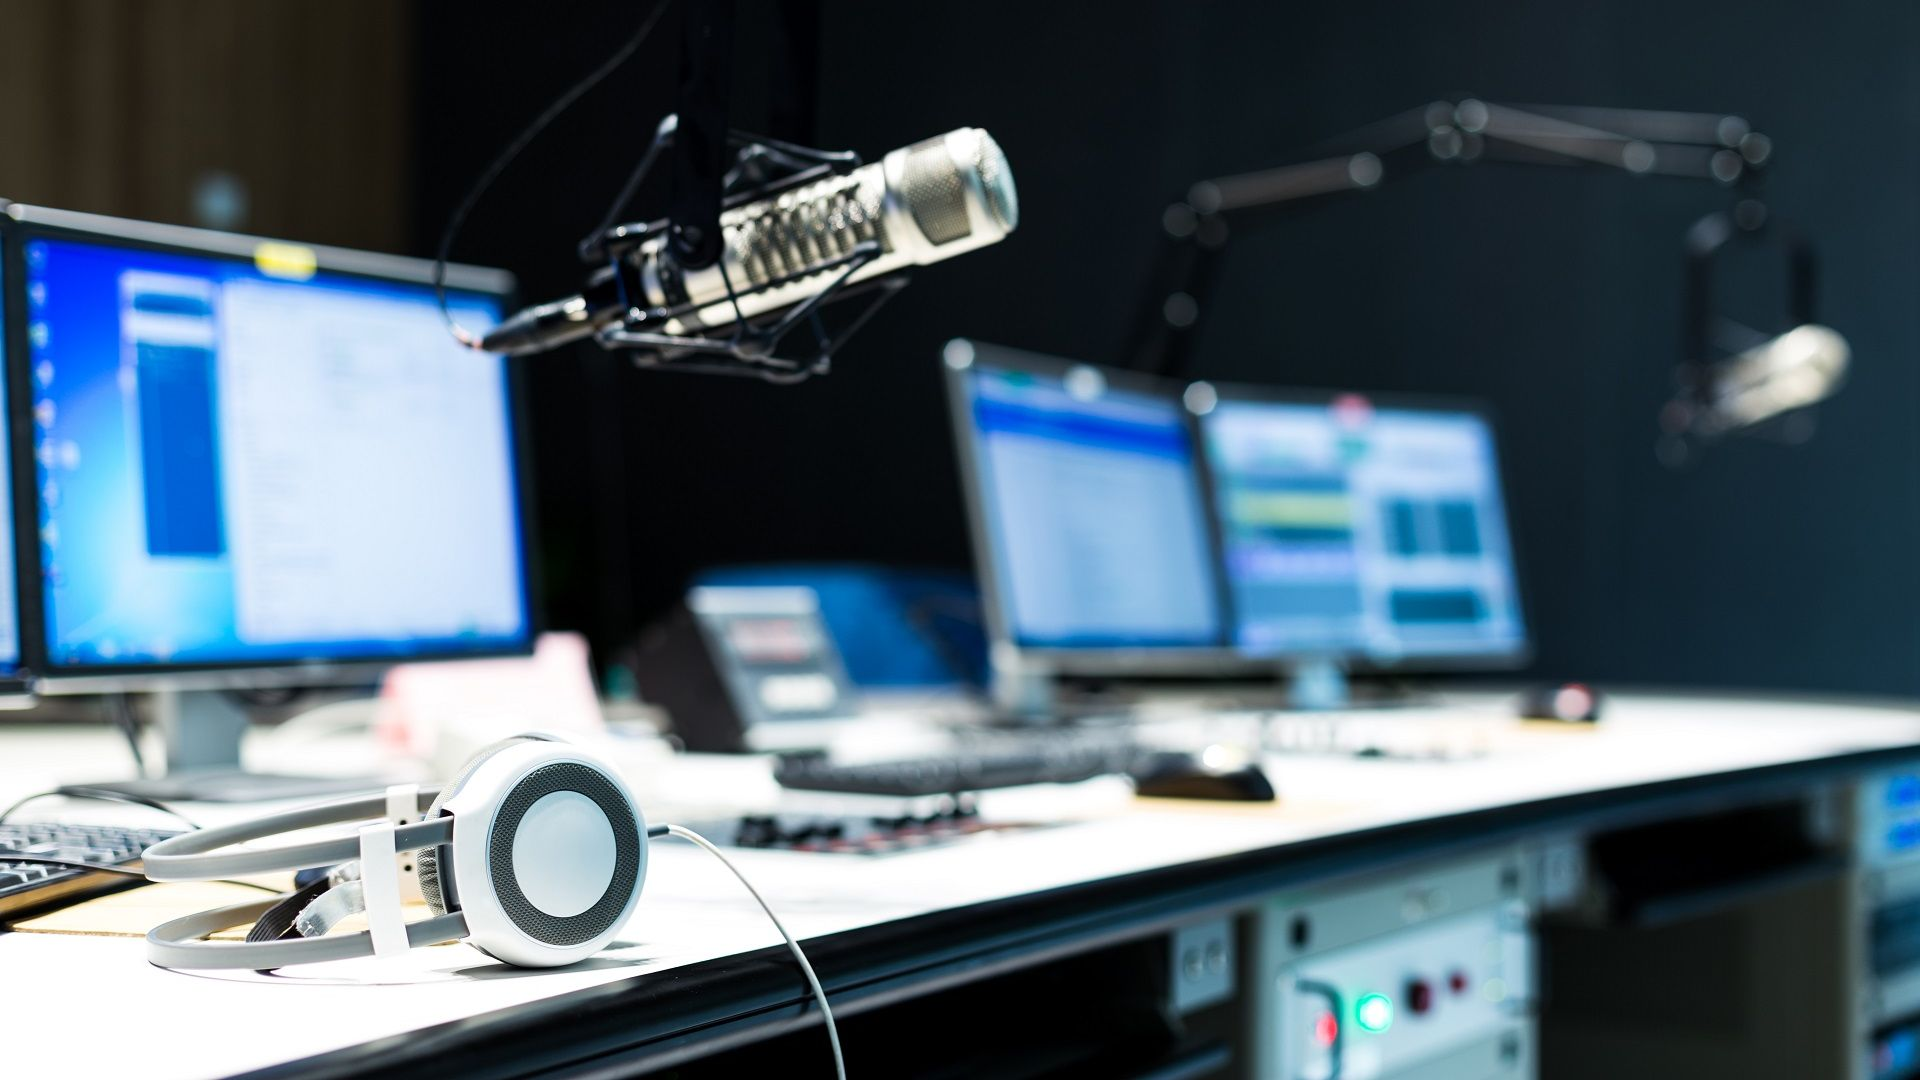 Charles Sturt's Radio course changed in response to industry's, graduates' needs